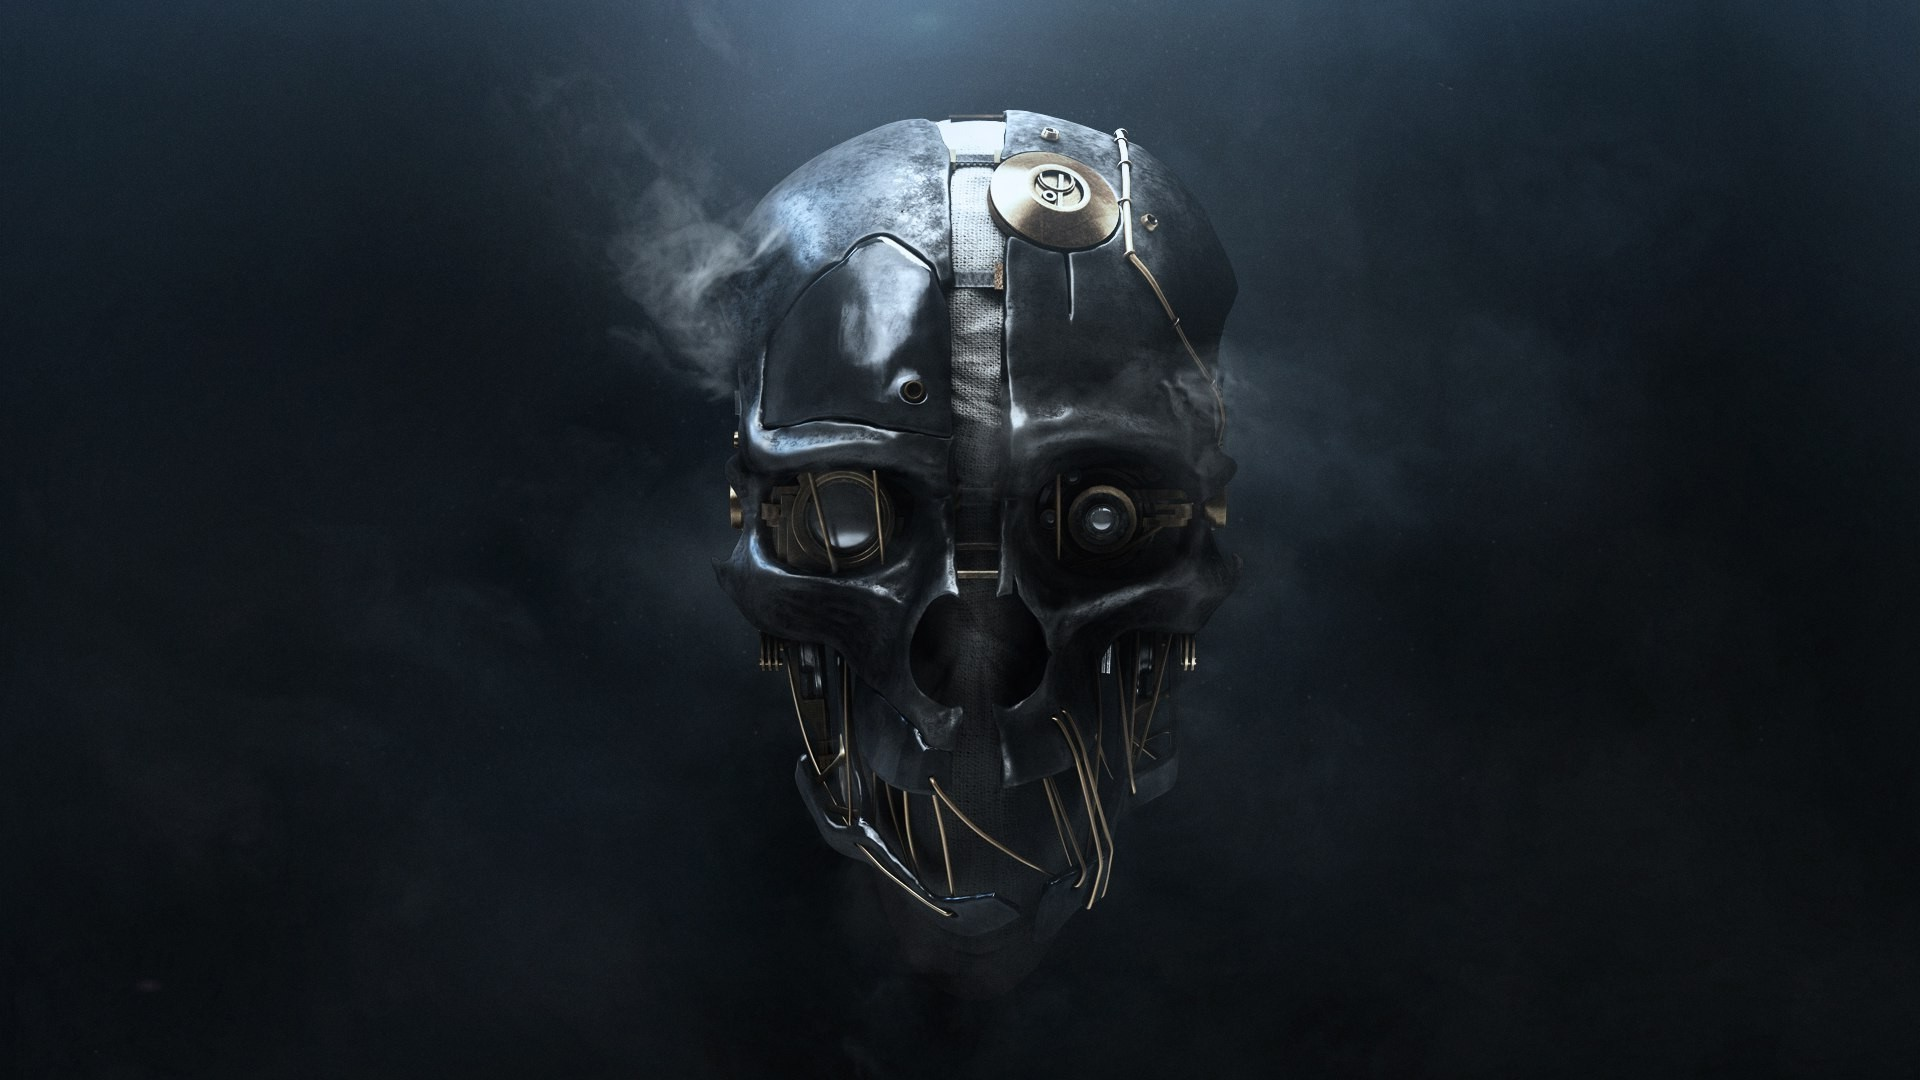 skull, simple background, 3d, metal, wires, smoke, technology